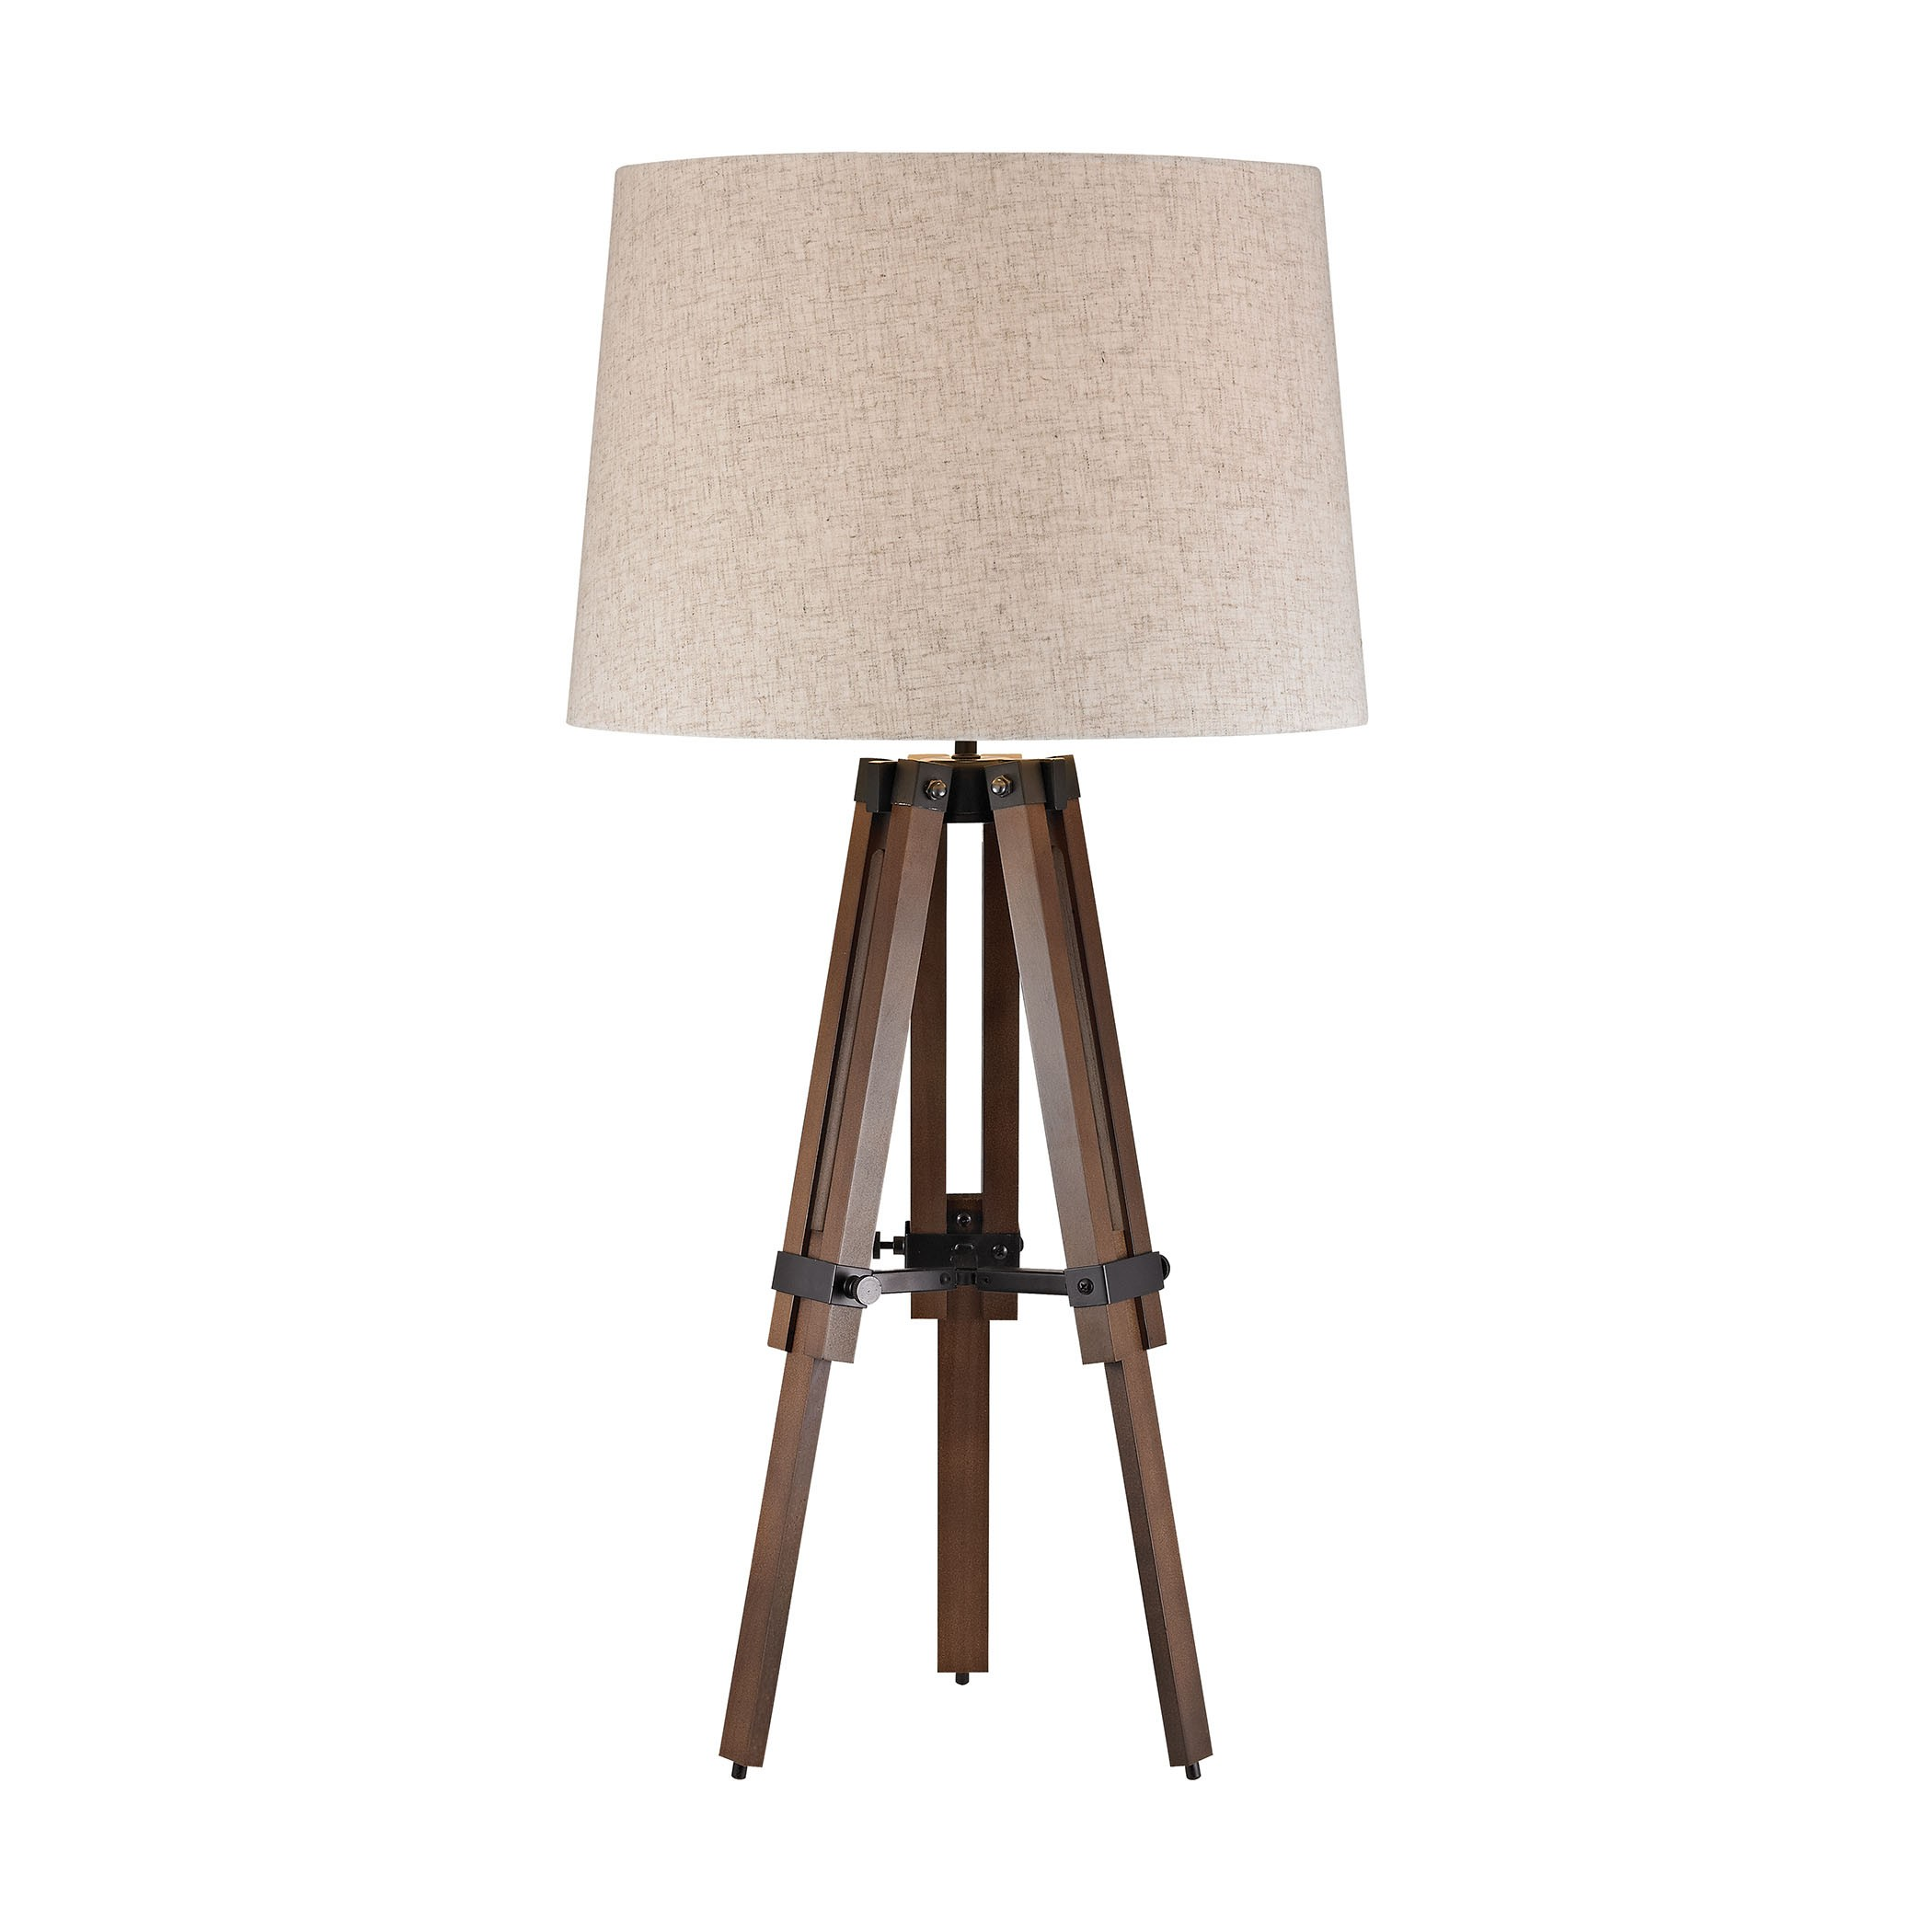 primitive decor rustic decoration accents wall art wooden brace decorative accent table lamps tripod lamp ashley furniture chairs counter height craft zebra chest drawers glass